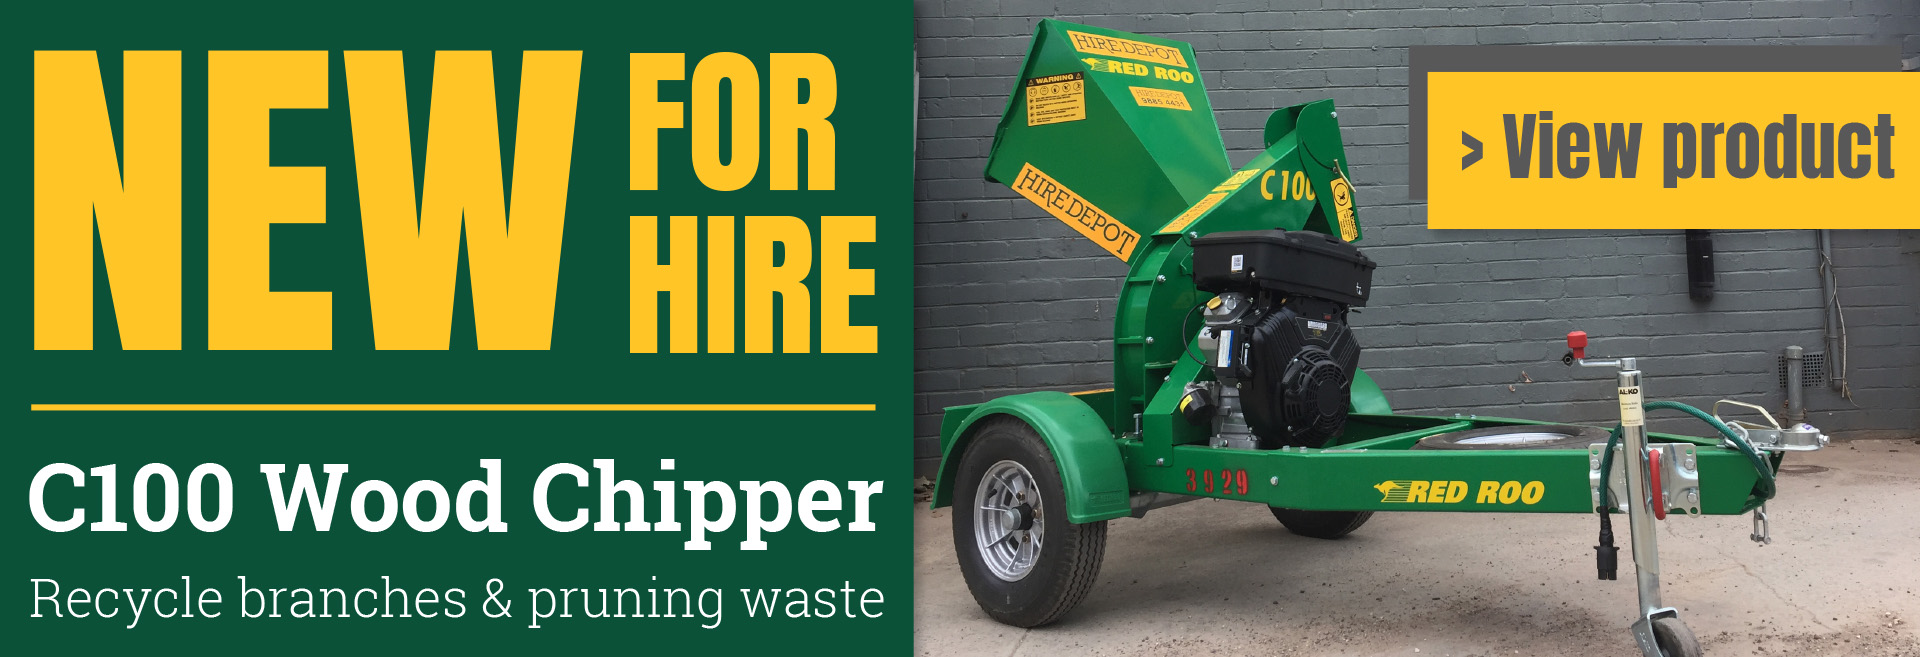 Wood chipper now available for hire